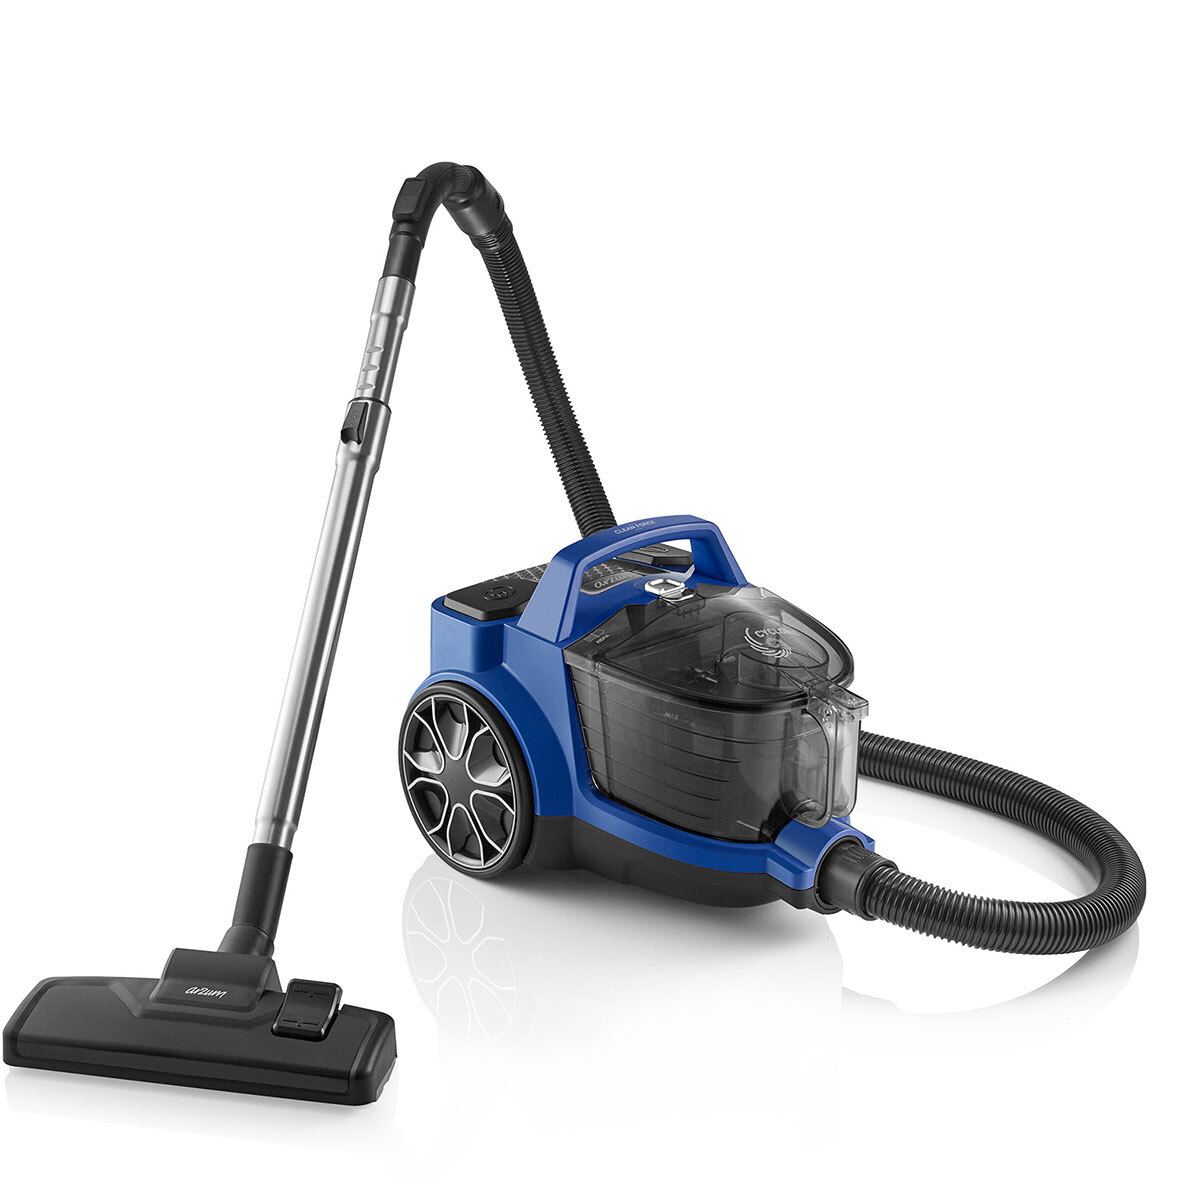 Arzum - AR4072 Clean Force Blue Cyclone Filter Vacuum Cleaner - Blue